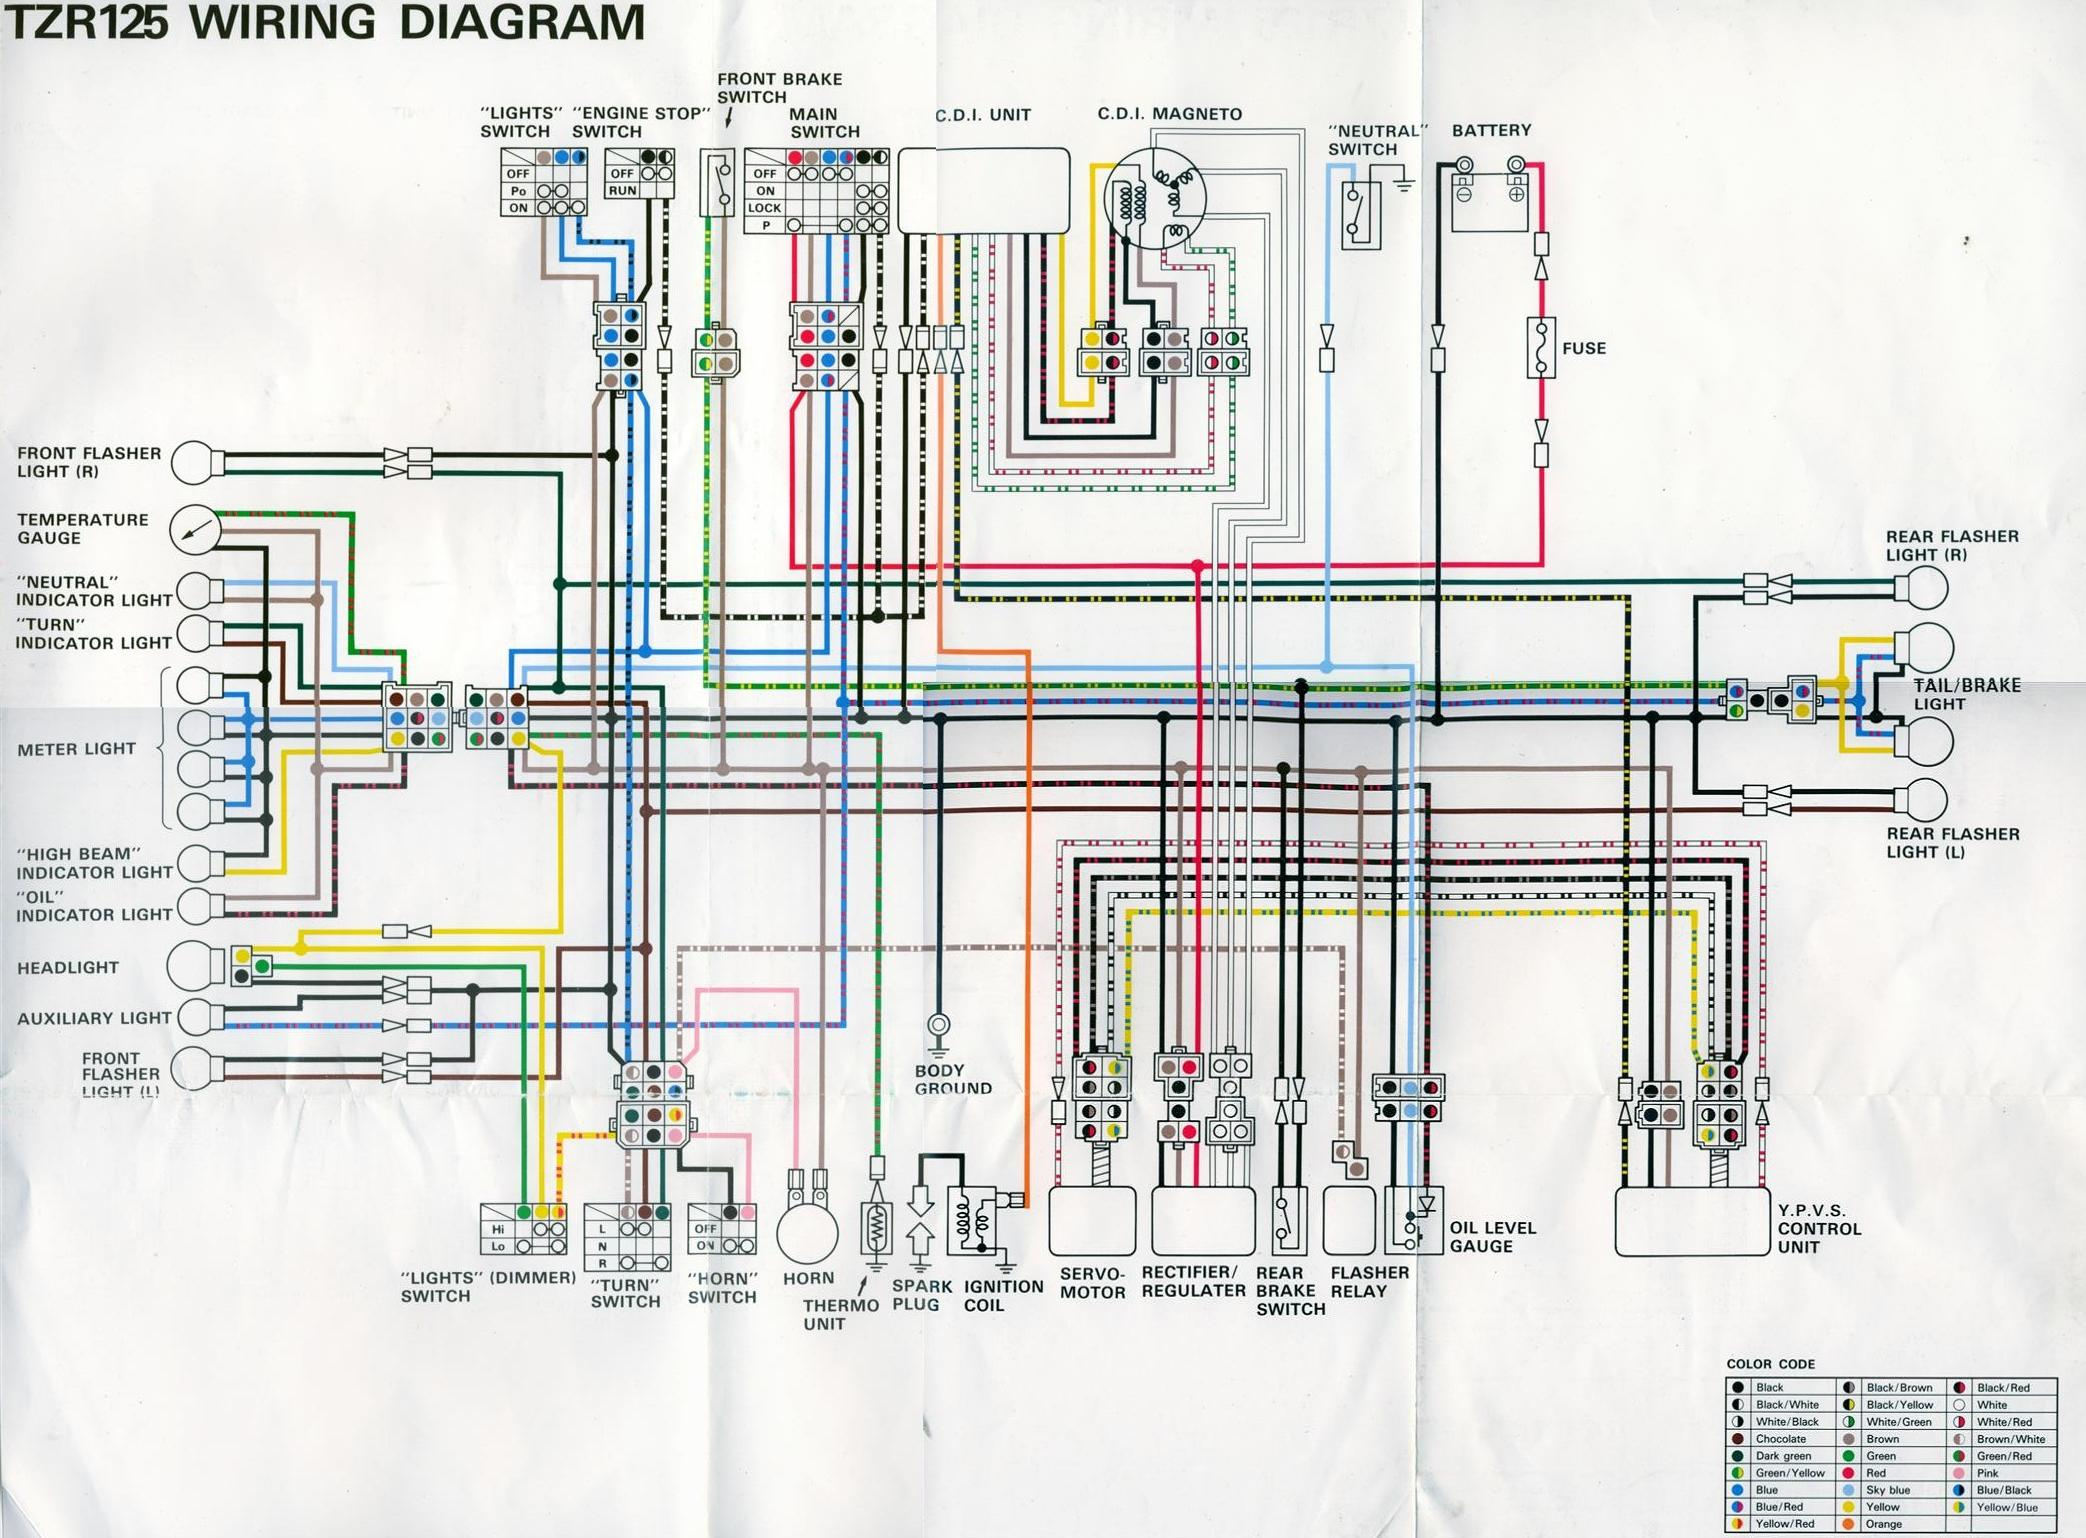 TZR125 Wiring Diagram 1 zongshen 125cc scooter wiring diagram best wiring library